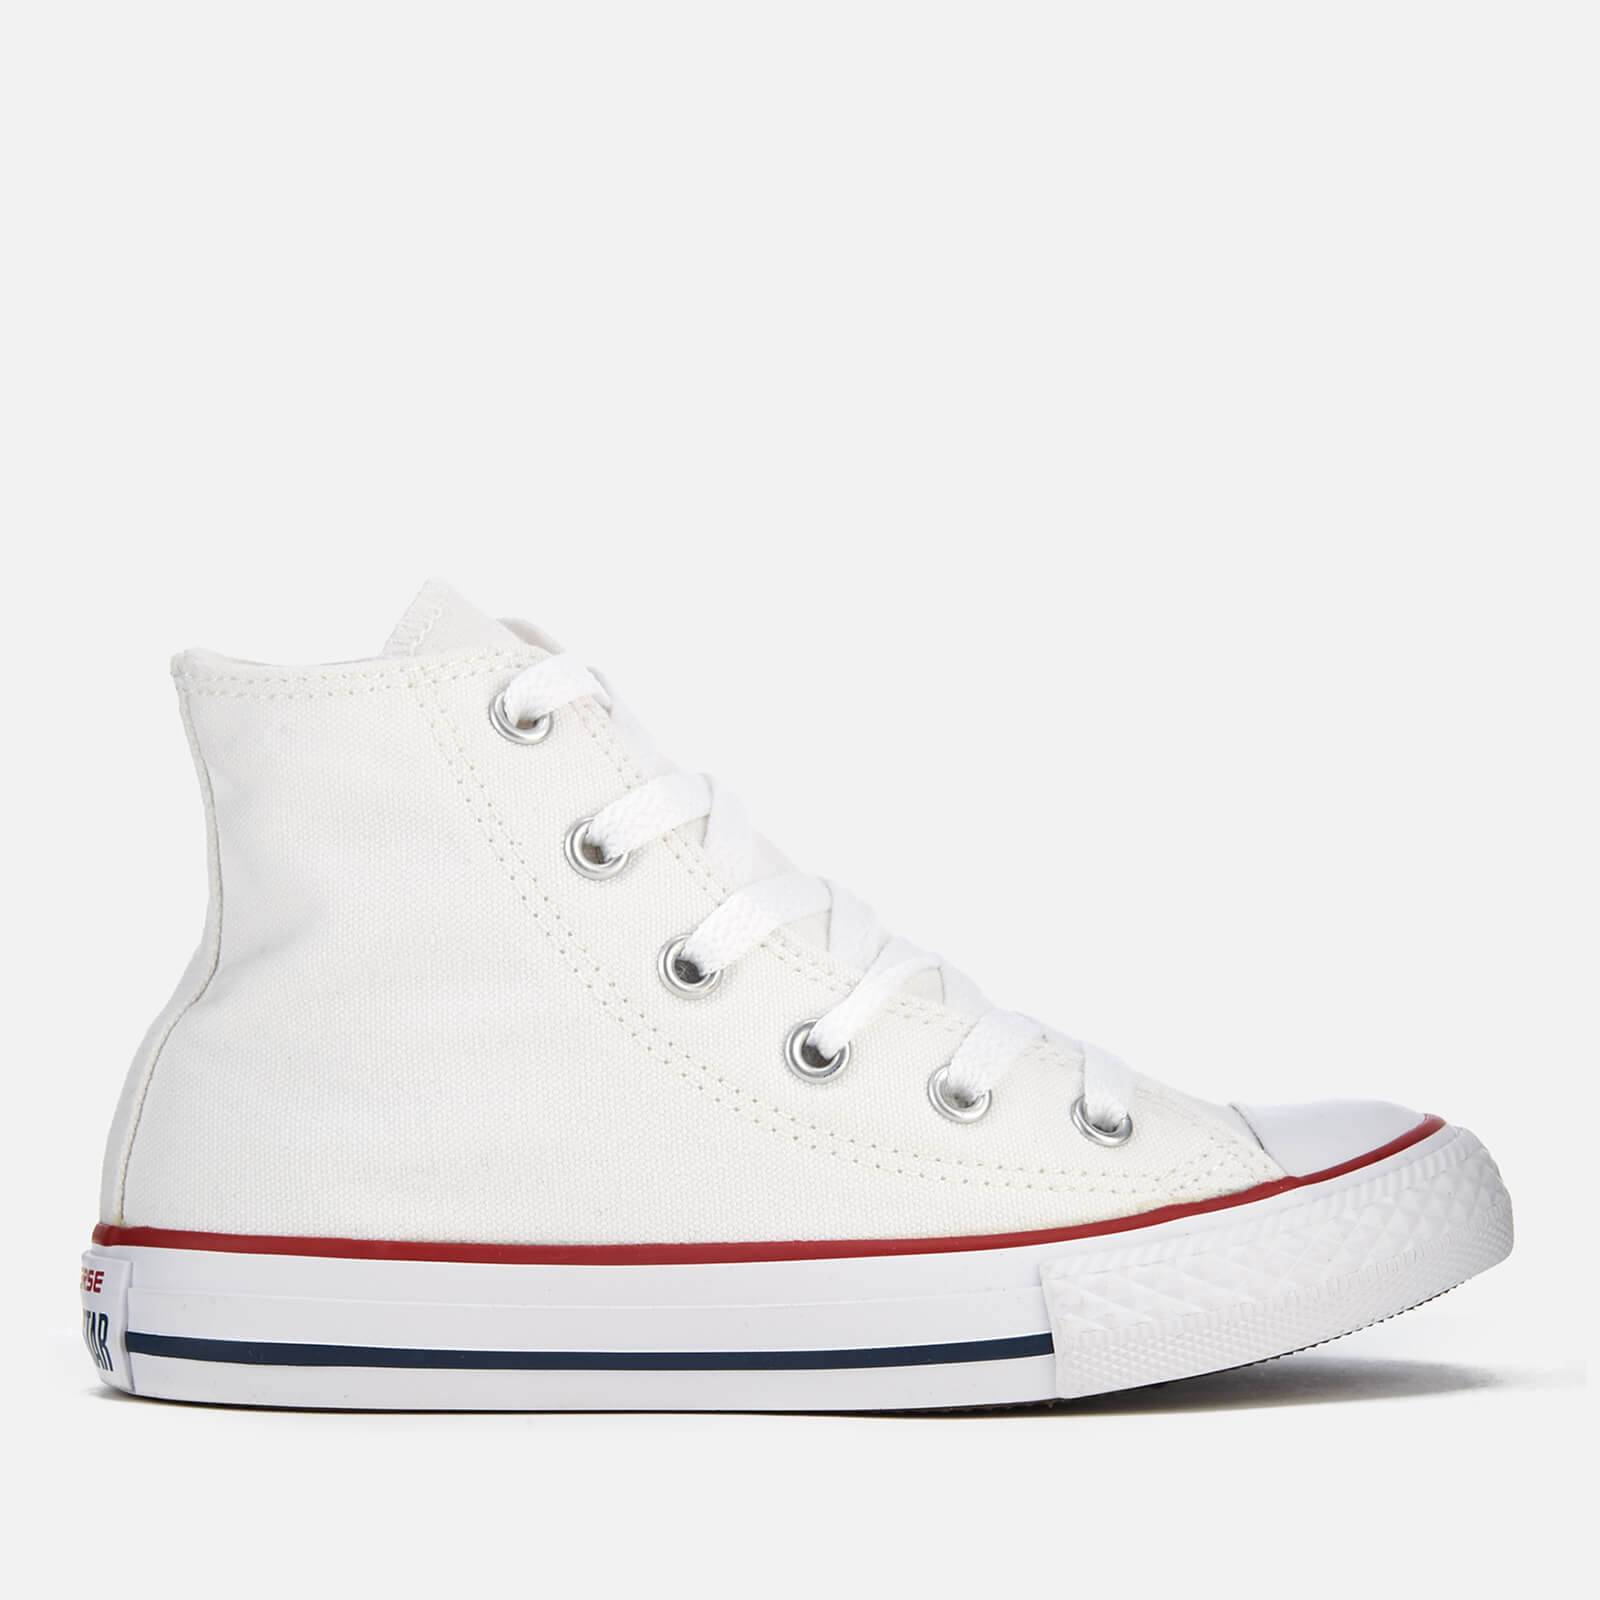 Converse Kids Chuck Taylor All Star Hi-Top Trainers - Optical White - UK 12 Kids - White